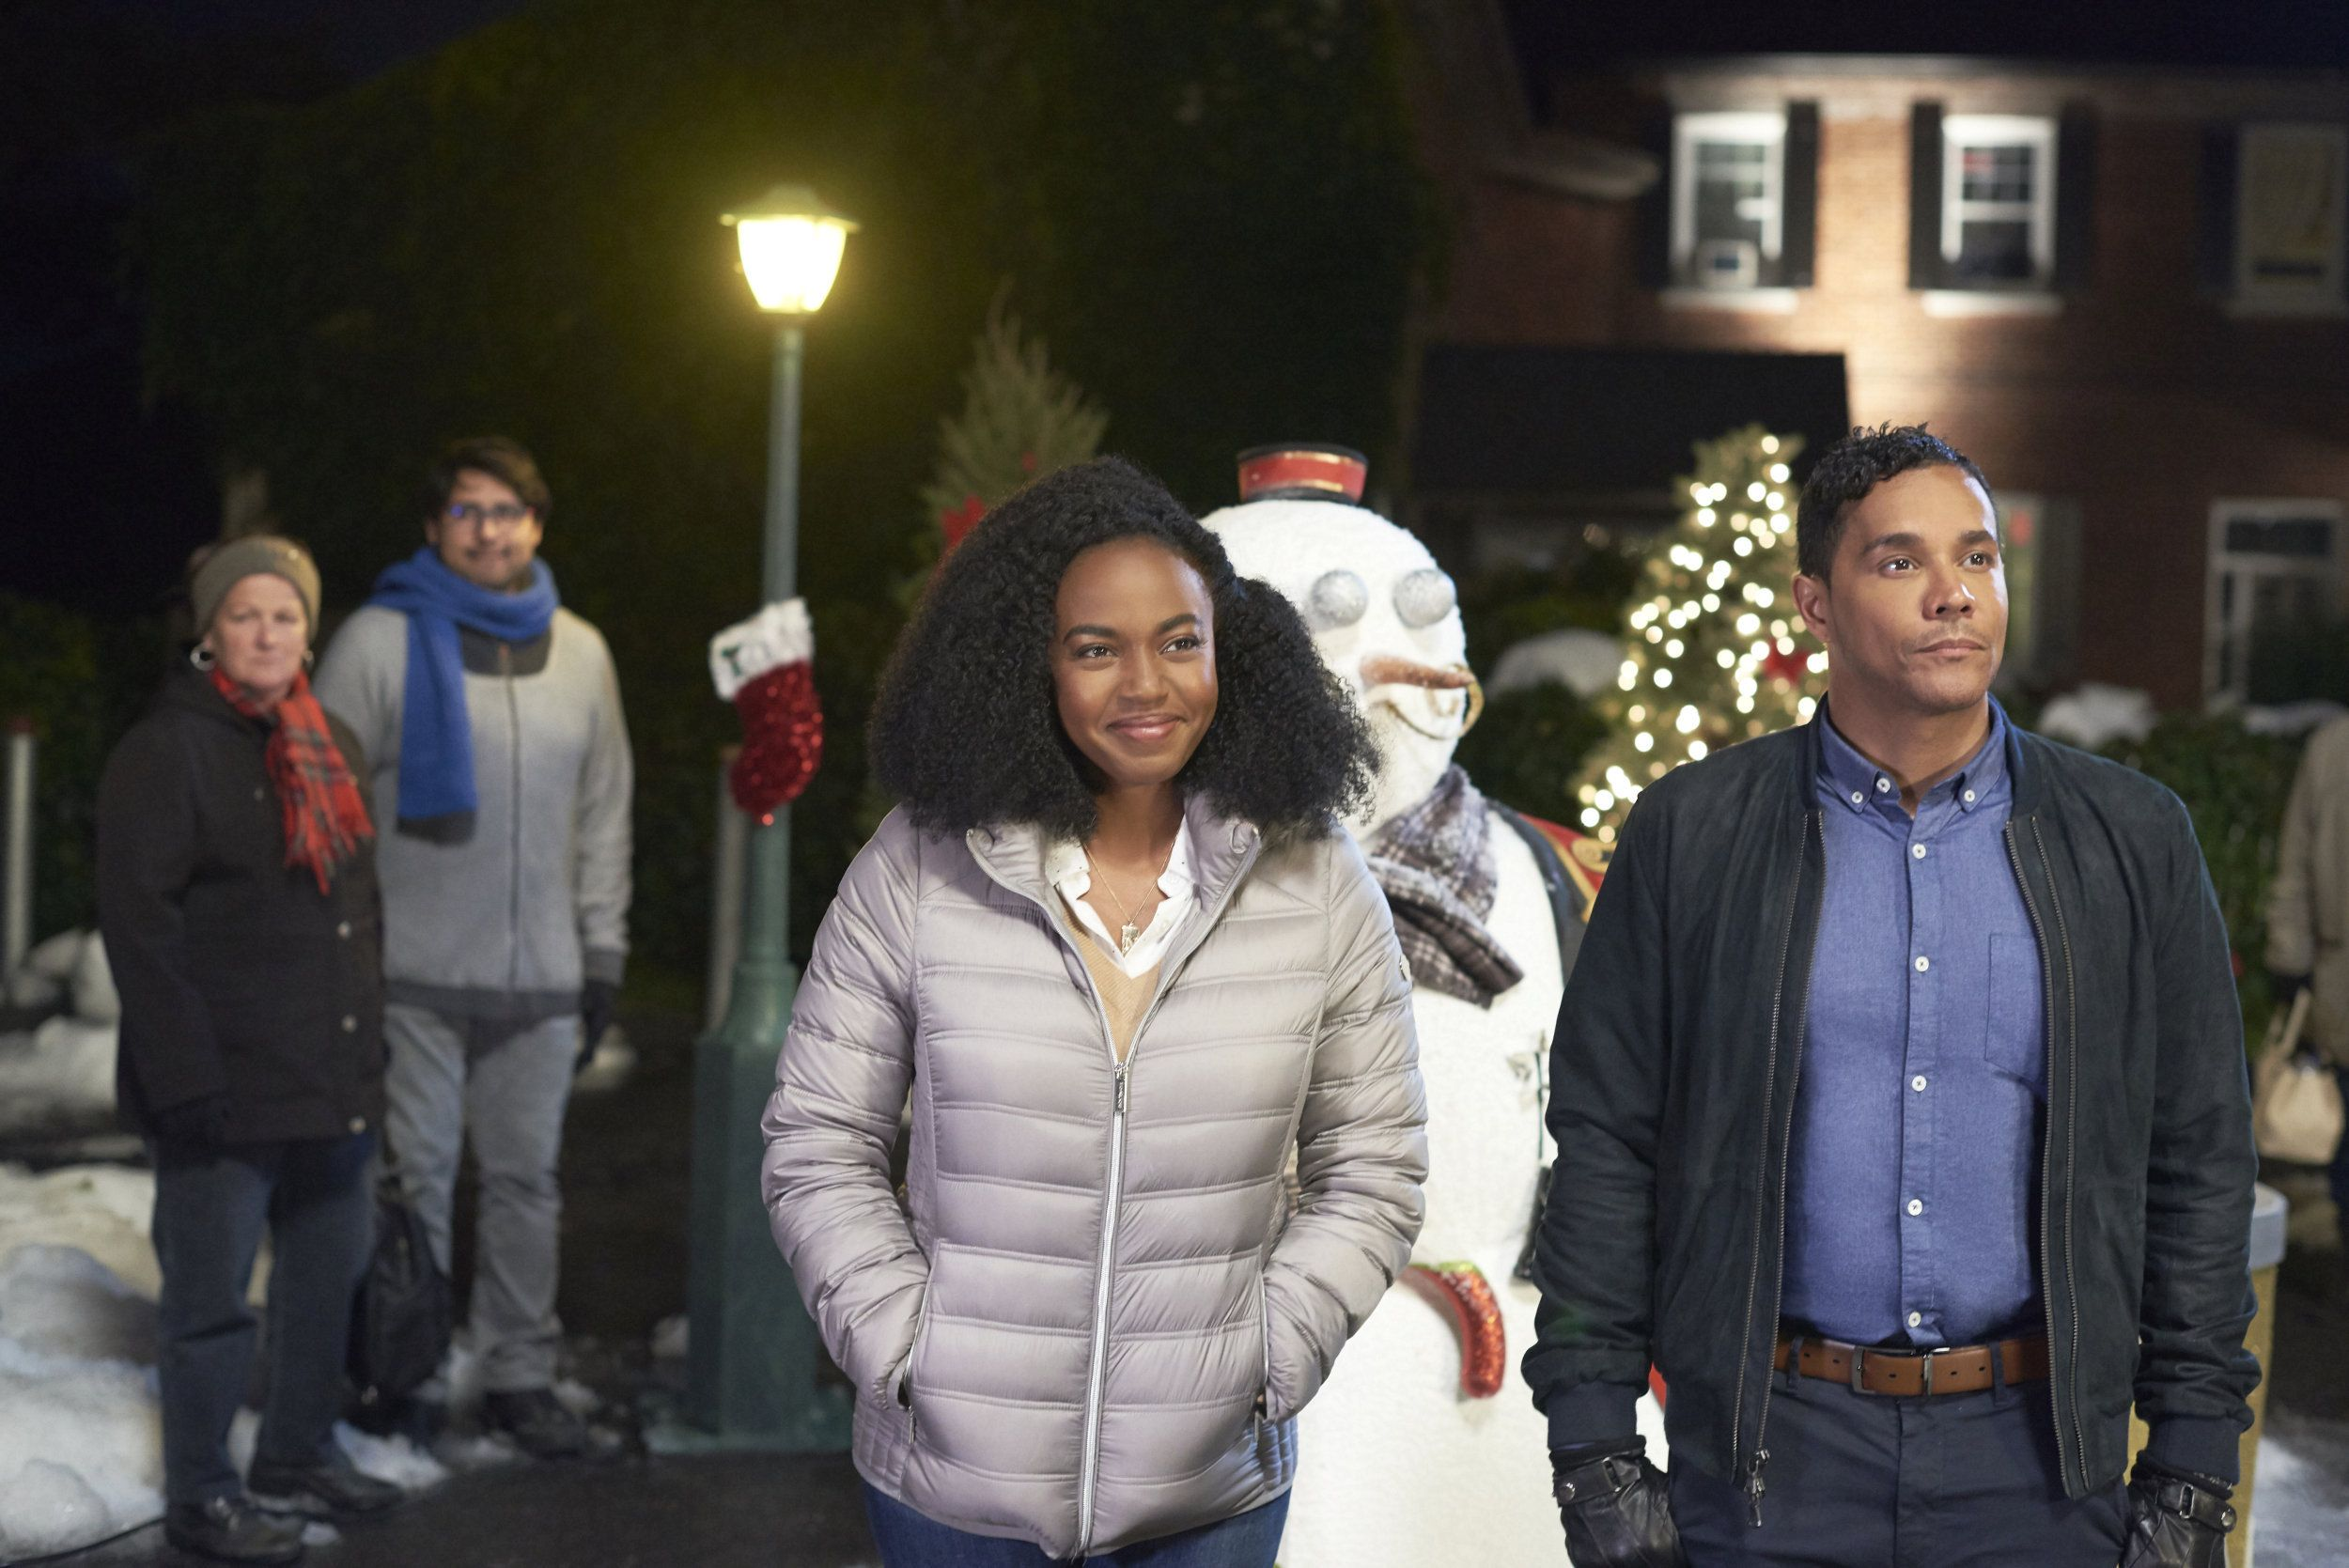 A Majestic Christmas.Check Out The Photo Gallery From The Hallmark Channel